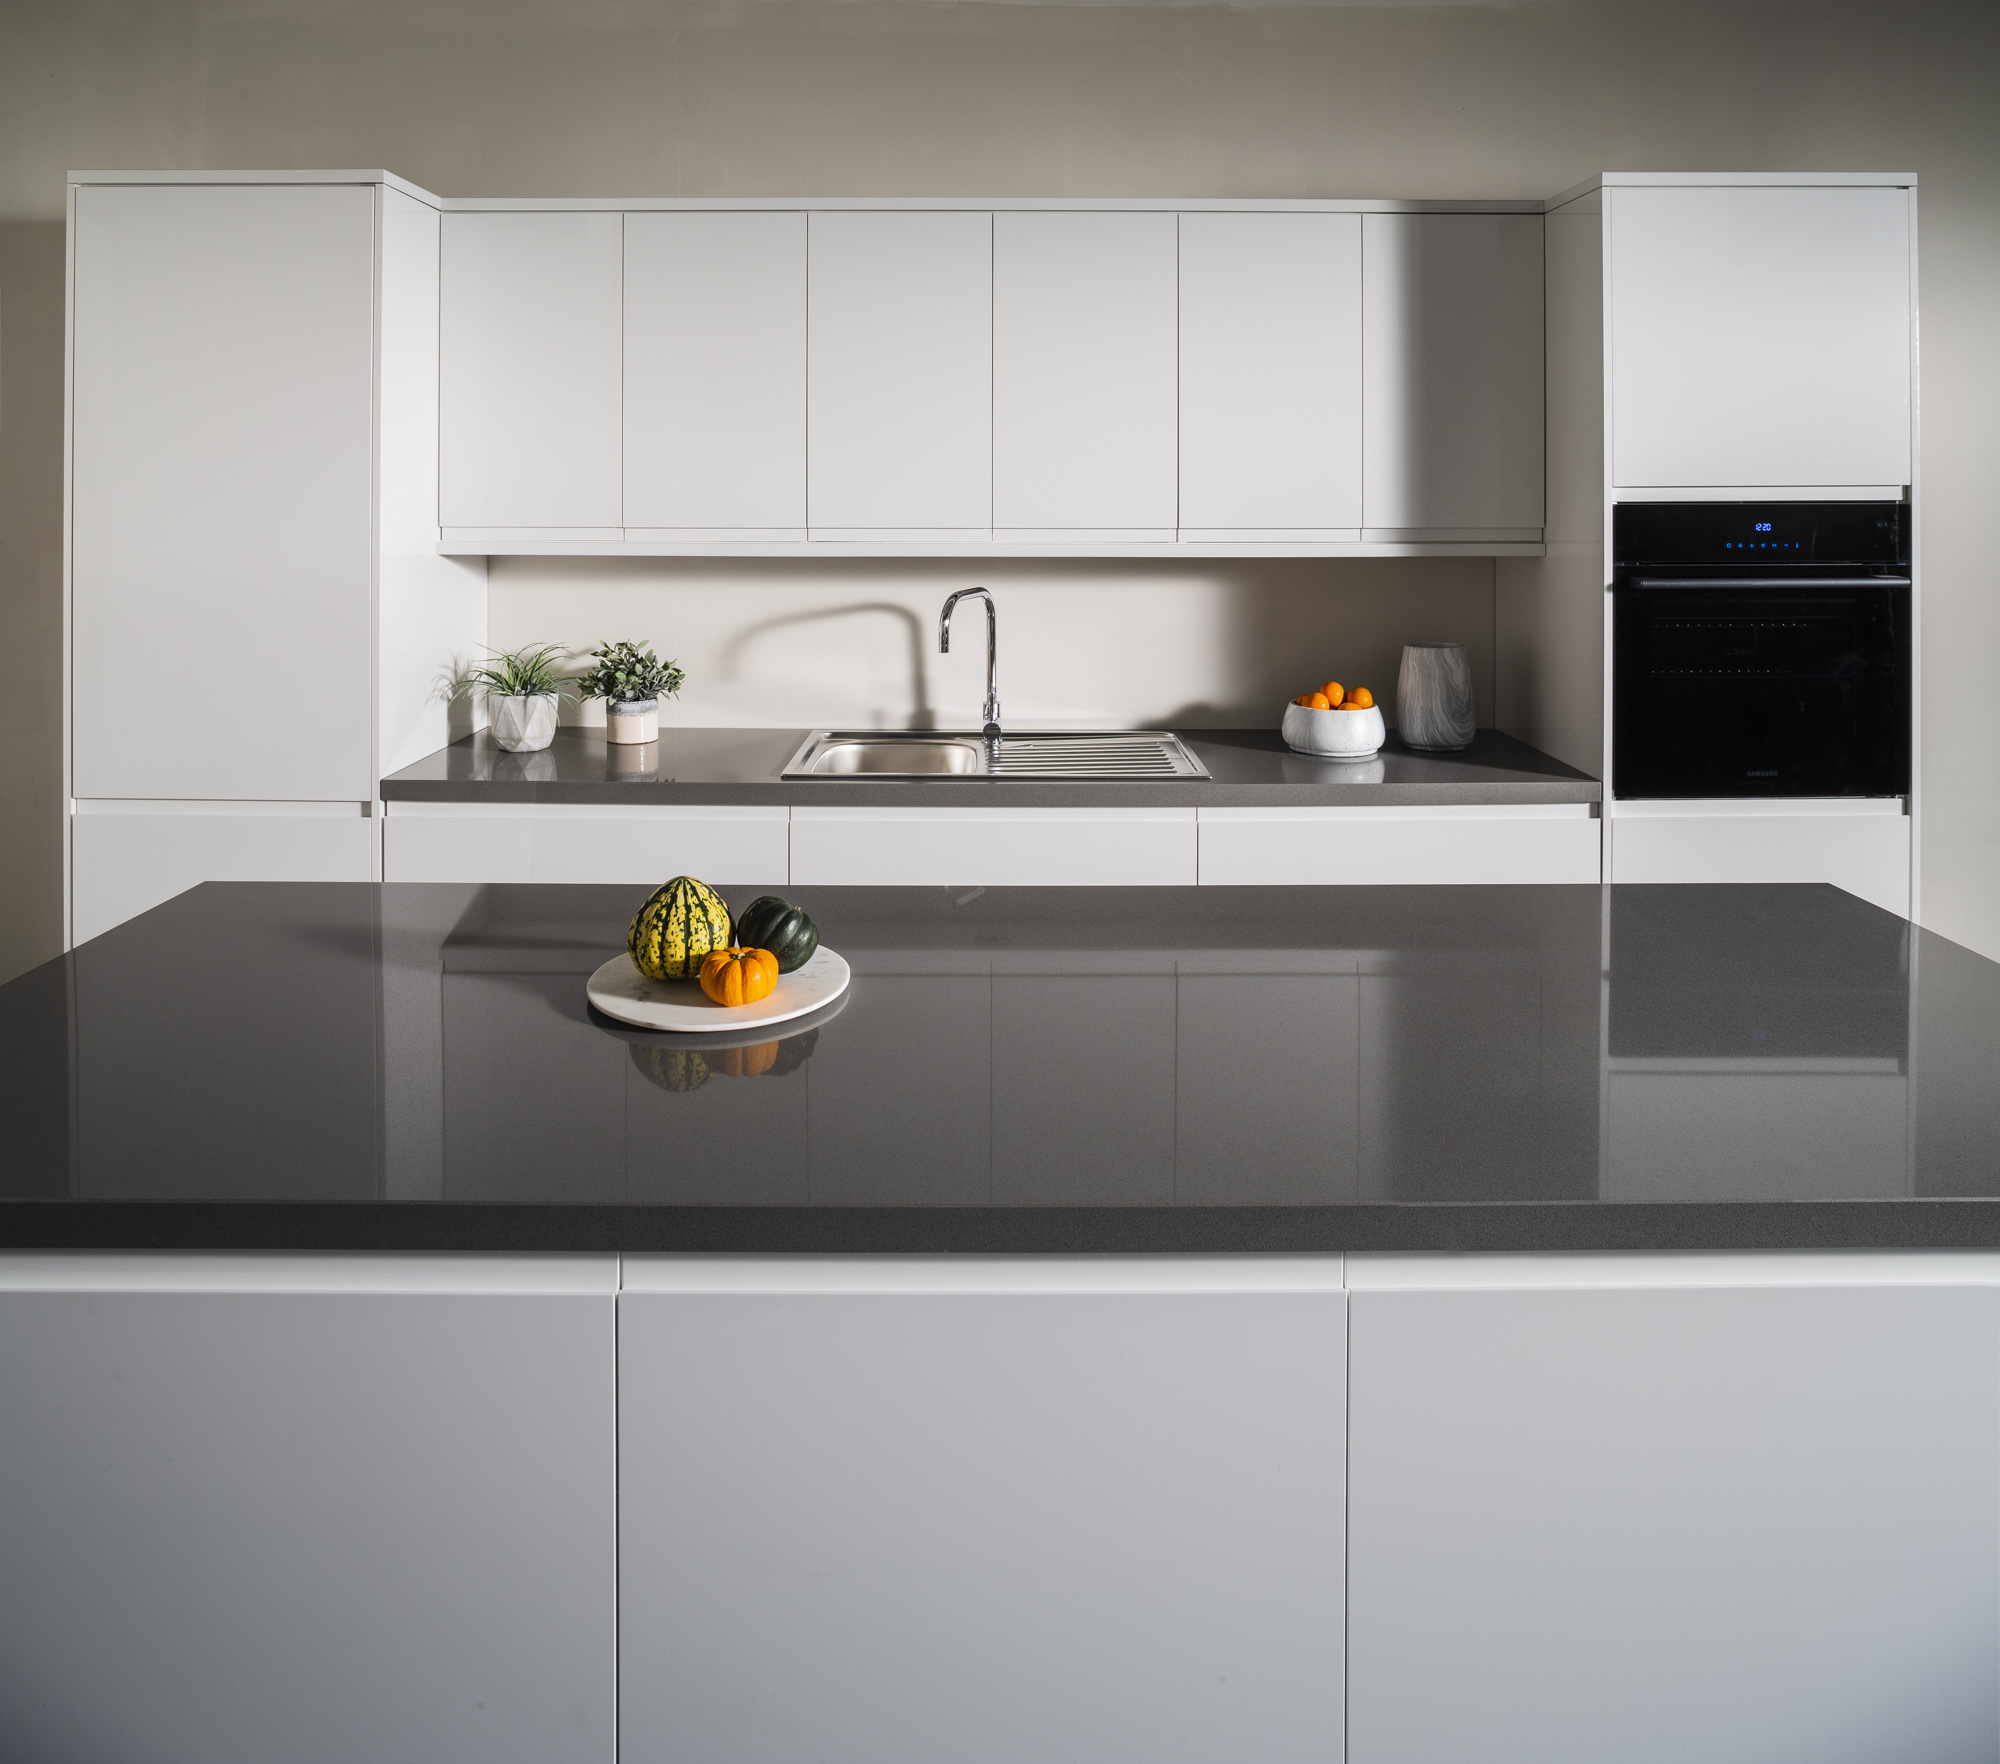 Maxtop Quartz: More than just a kitchen worktop